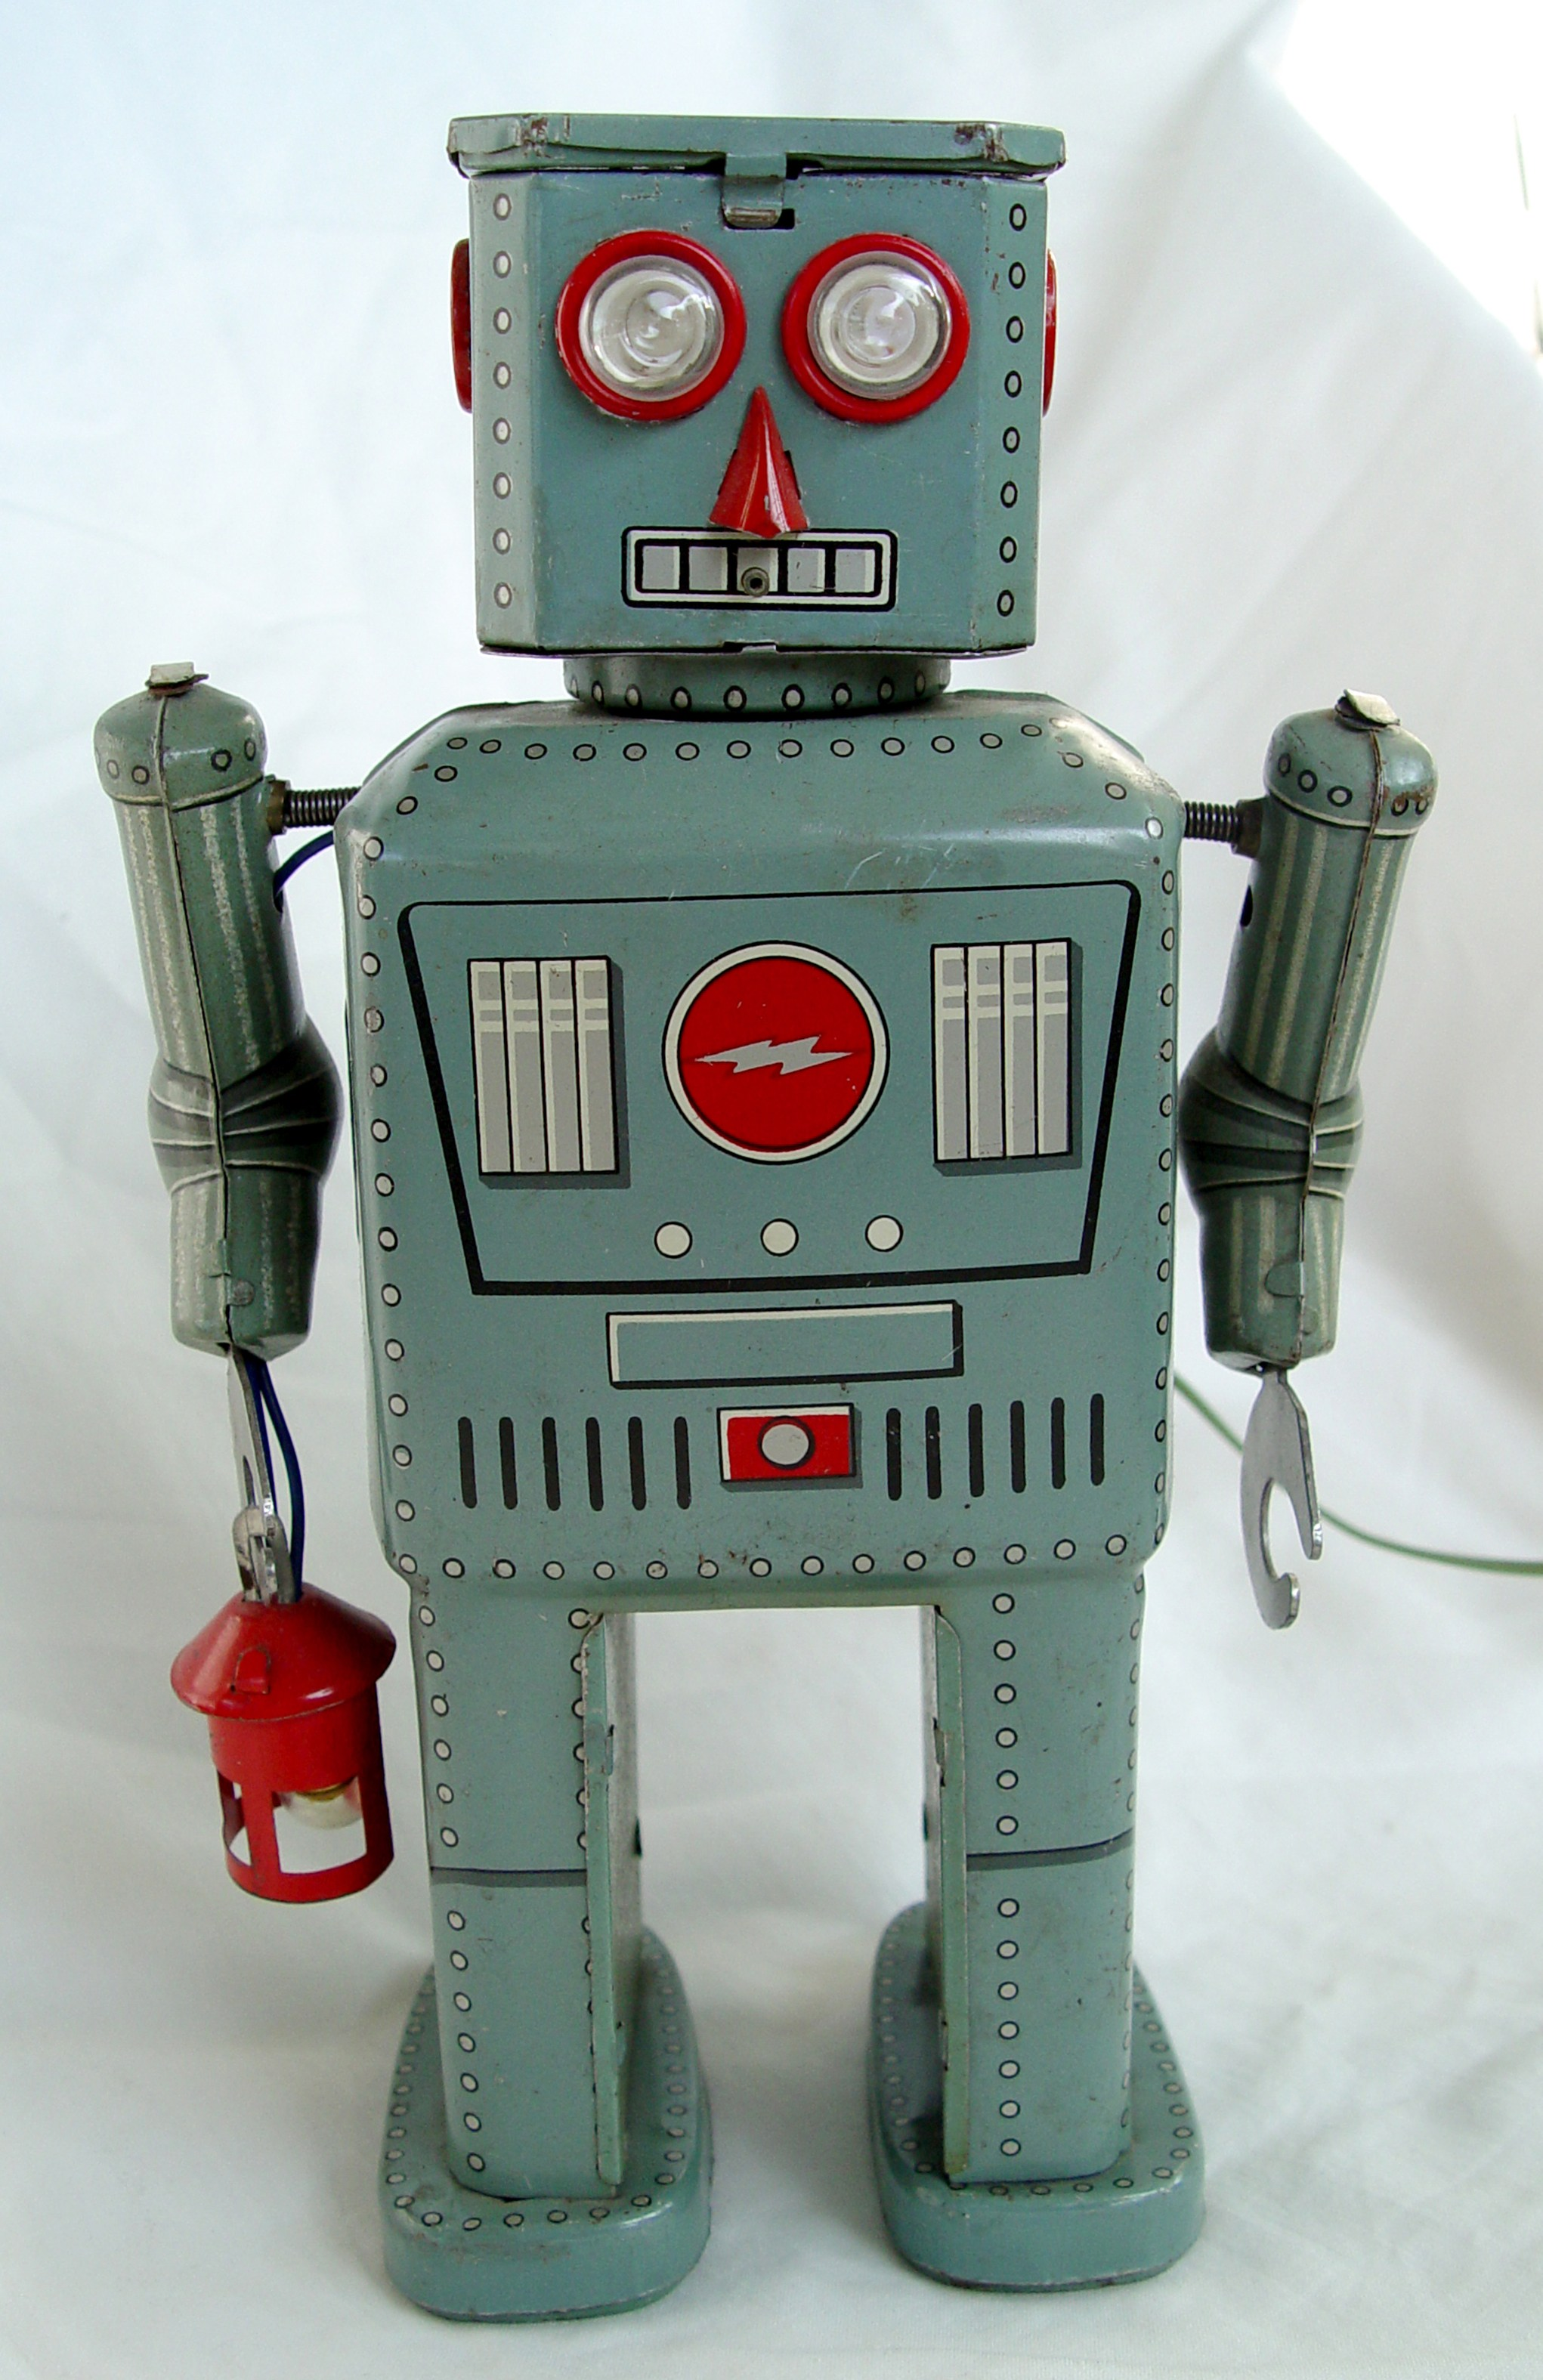 This robot carries a lantern, for which he's named, even though a robot would not need such a primitive light source to see.